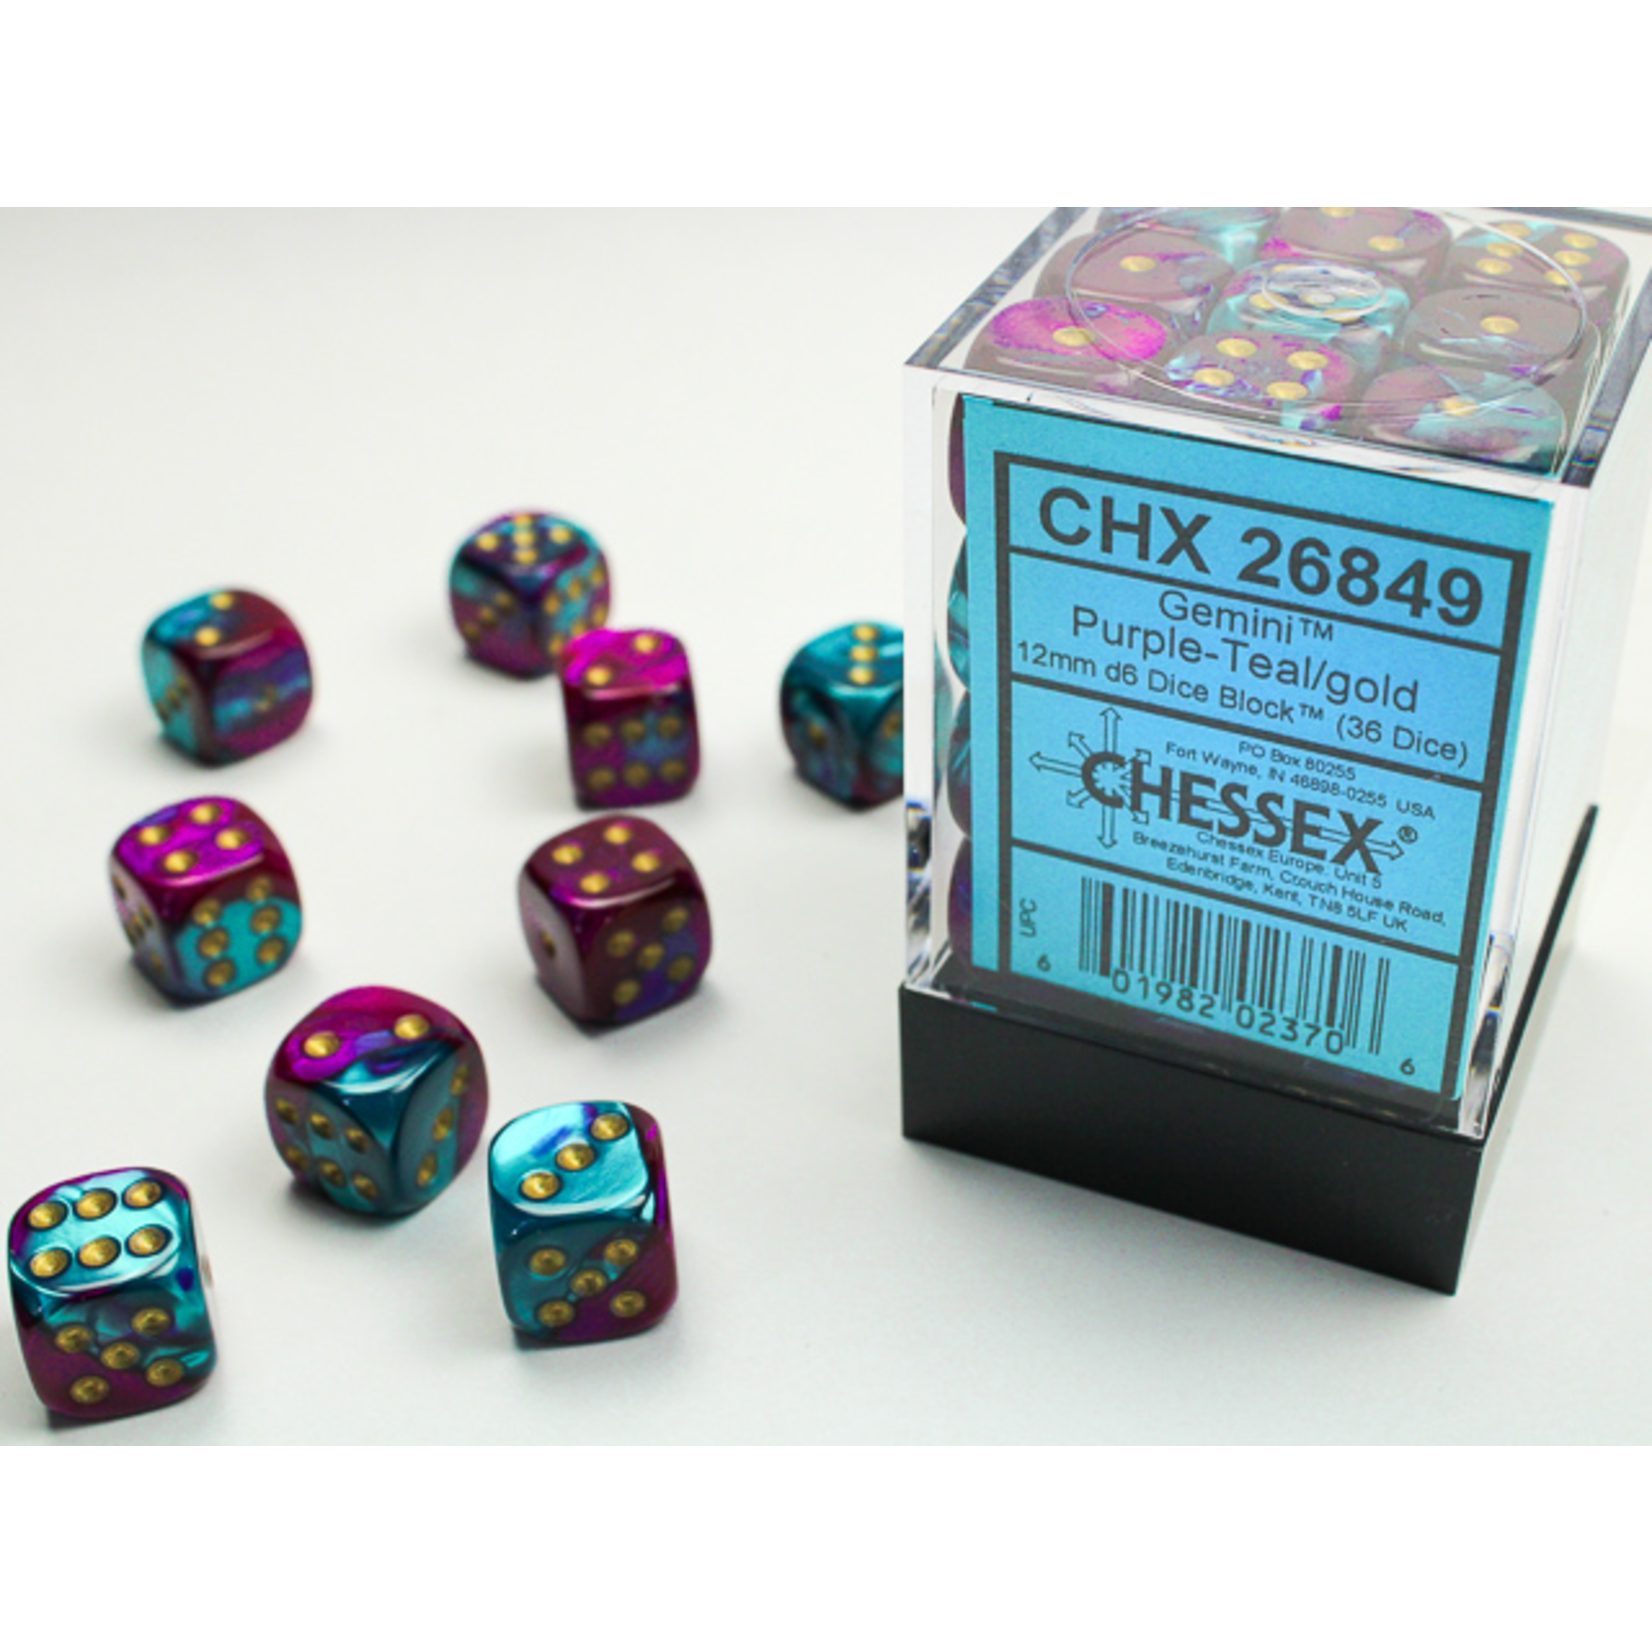 Chessex Dice: D6 Cube 12mm Gemini Purple-Teal with Gold Pips (CHX)